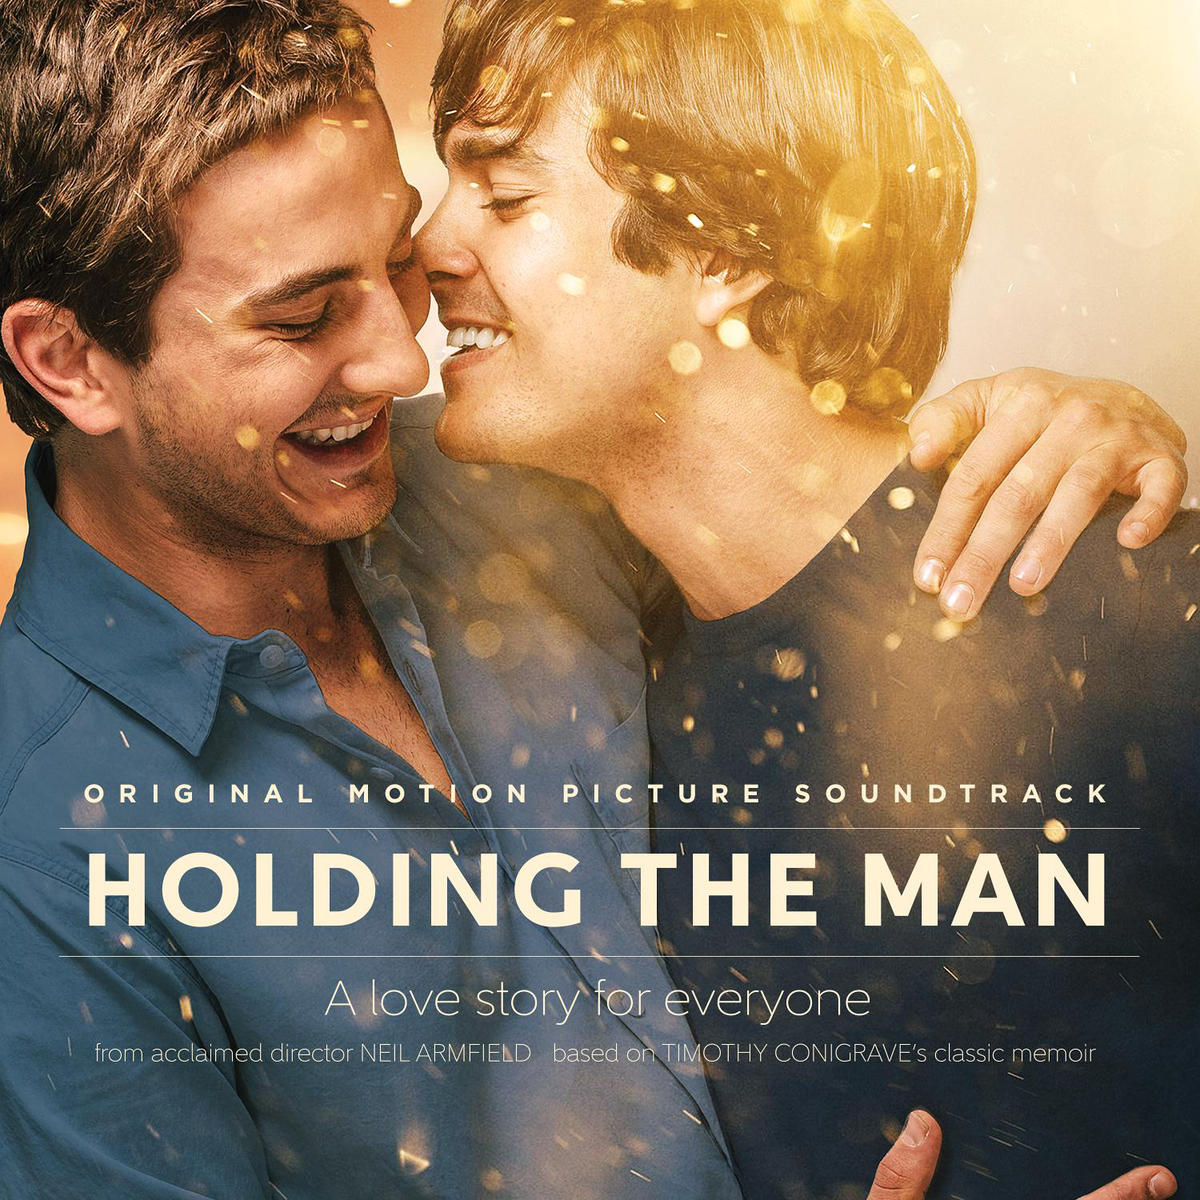 Holding the Man Original Motion Picture Soundtrack